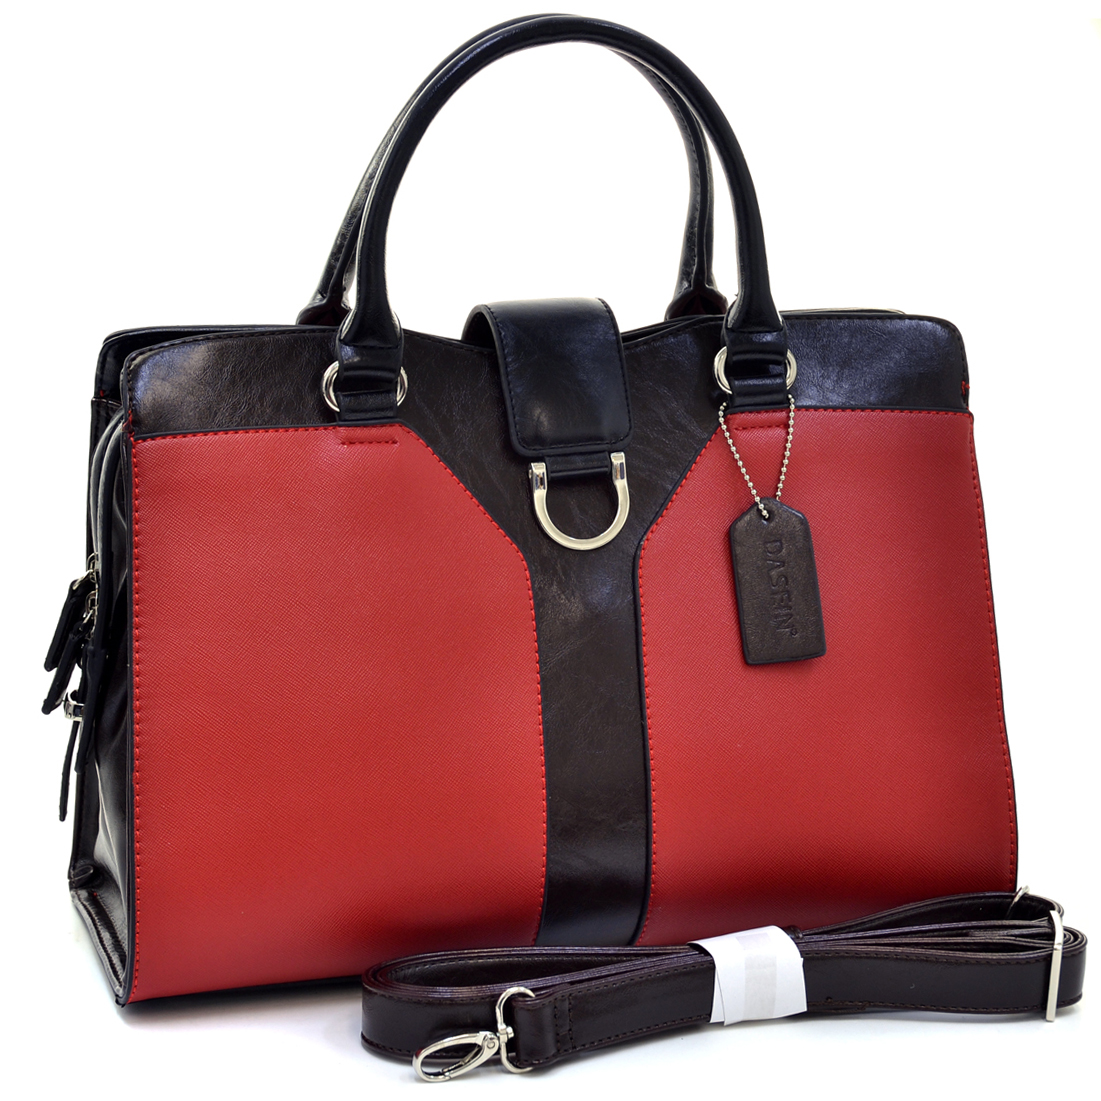 Two Tone Satchel With Silver Half Ring Accent